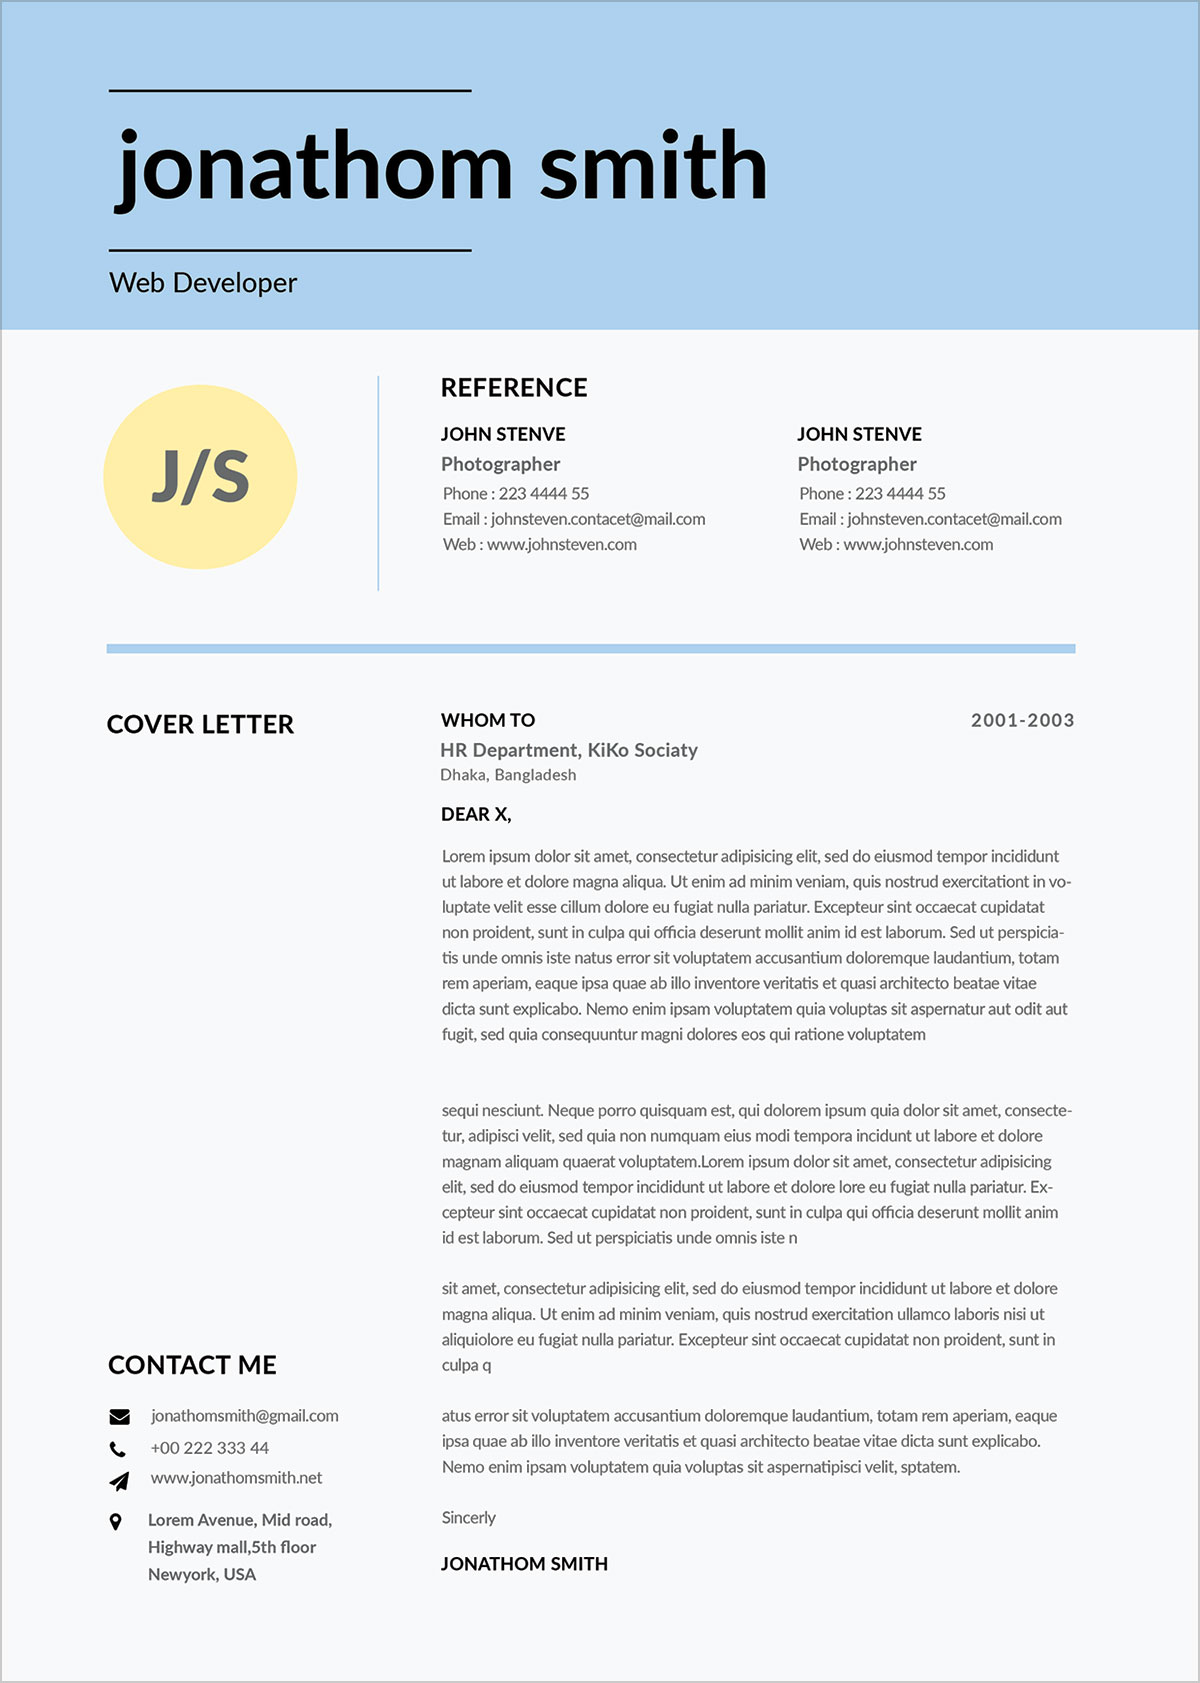 Free-Simple-Resume-Template-For-Web-Developer-in-PSD-Format-5